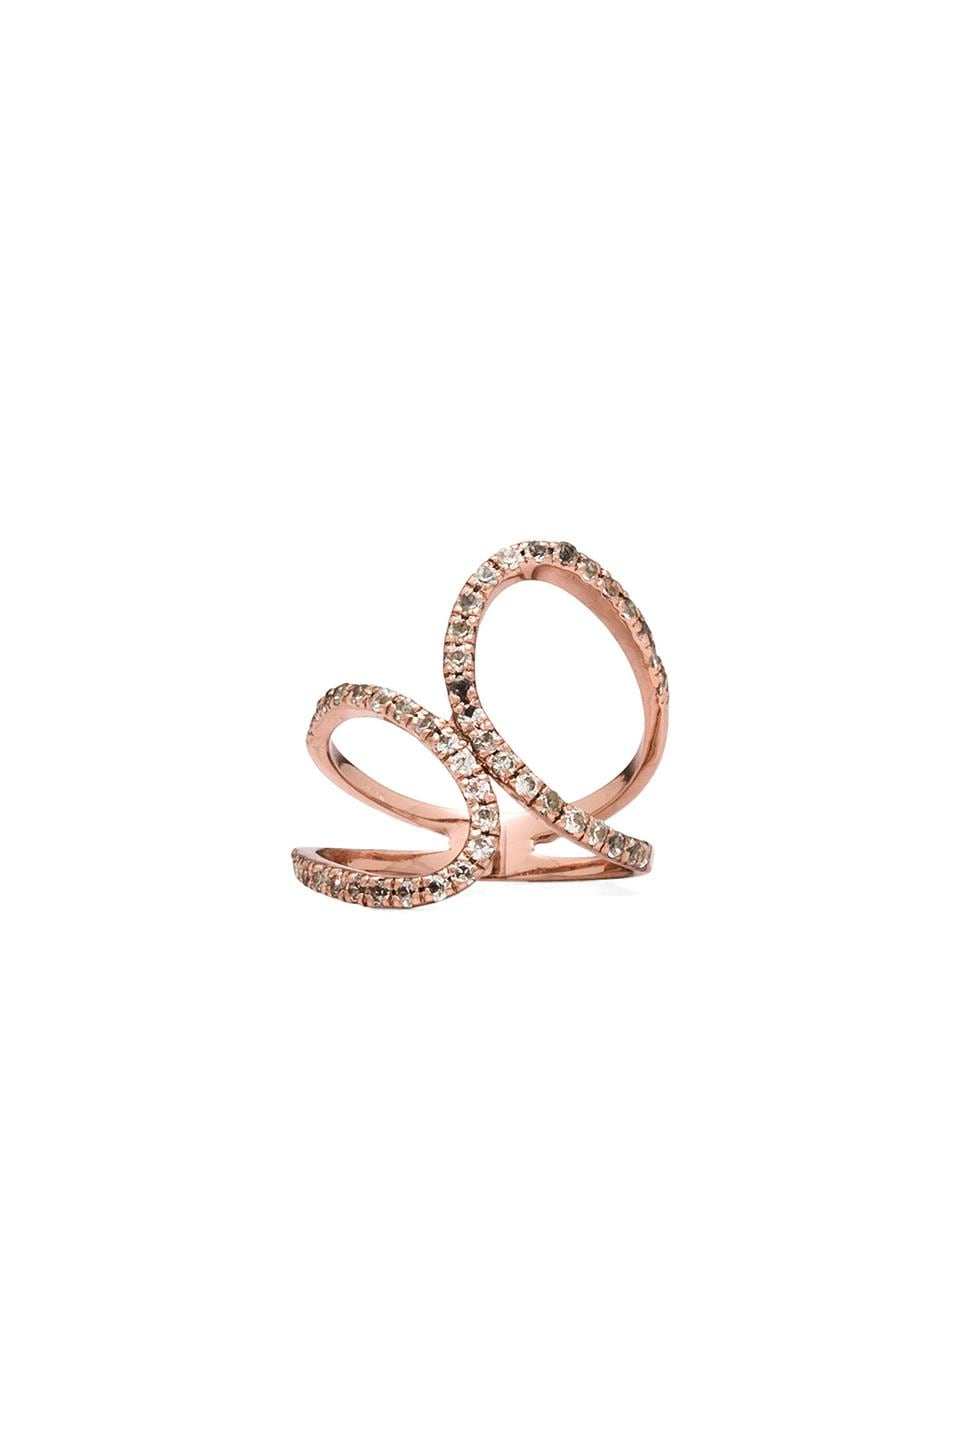 Alex Mika Infinity Ring in Rose Gold